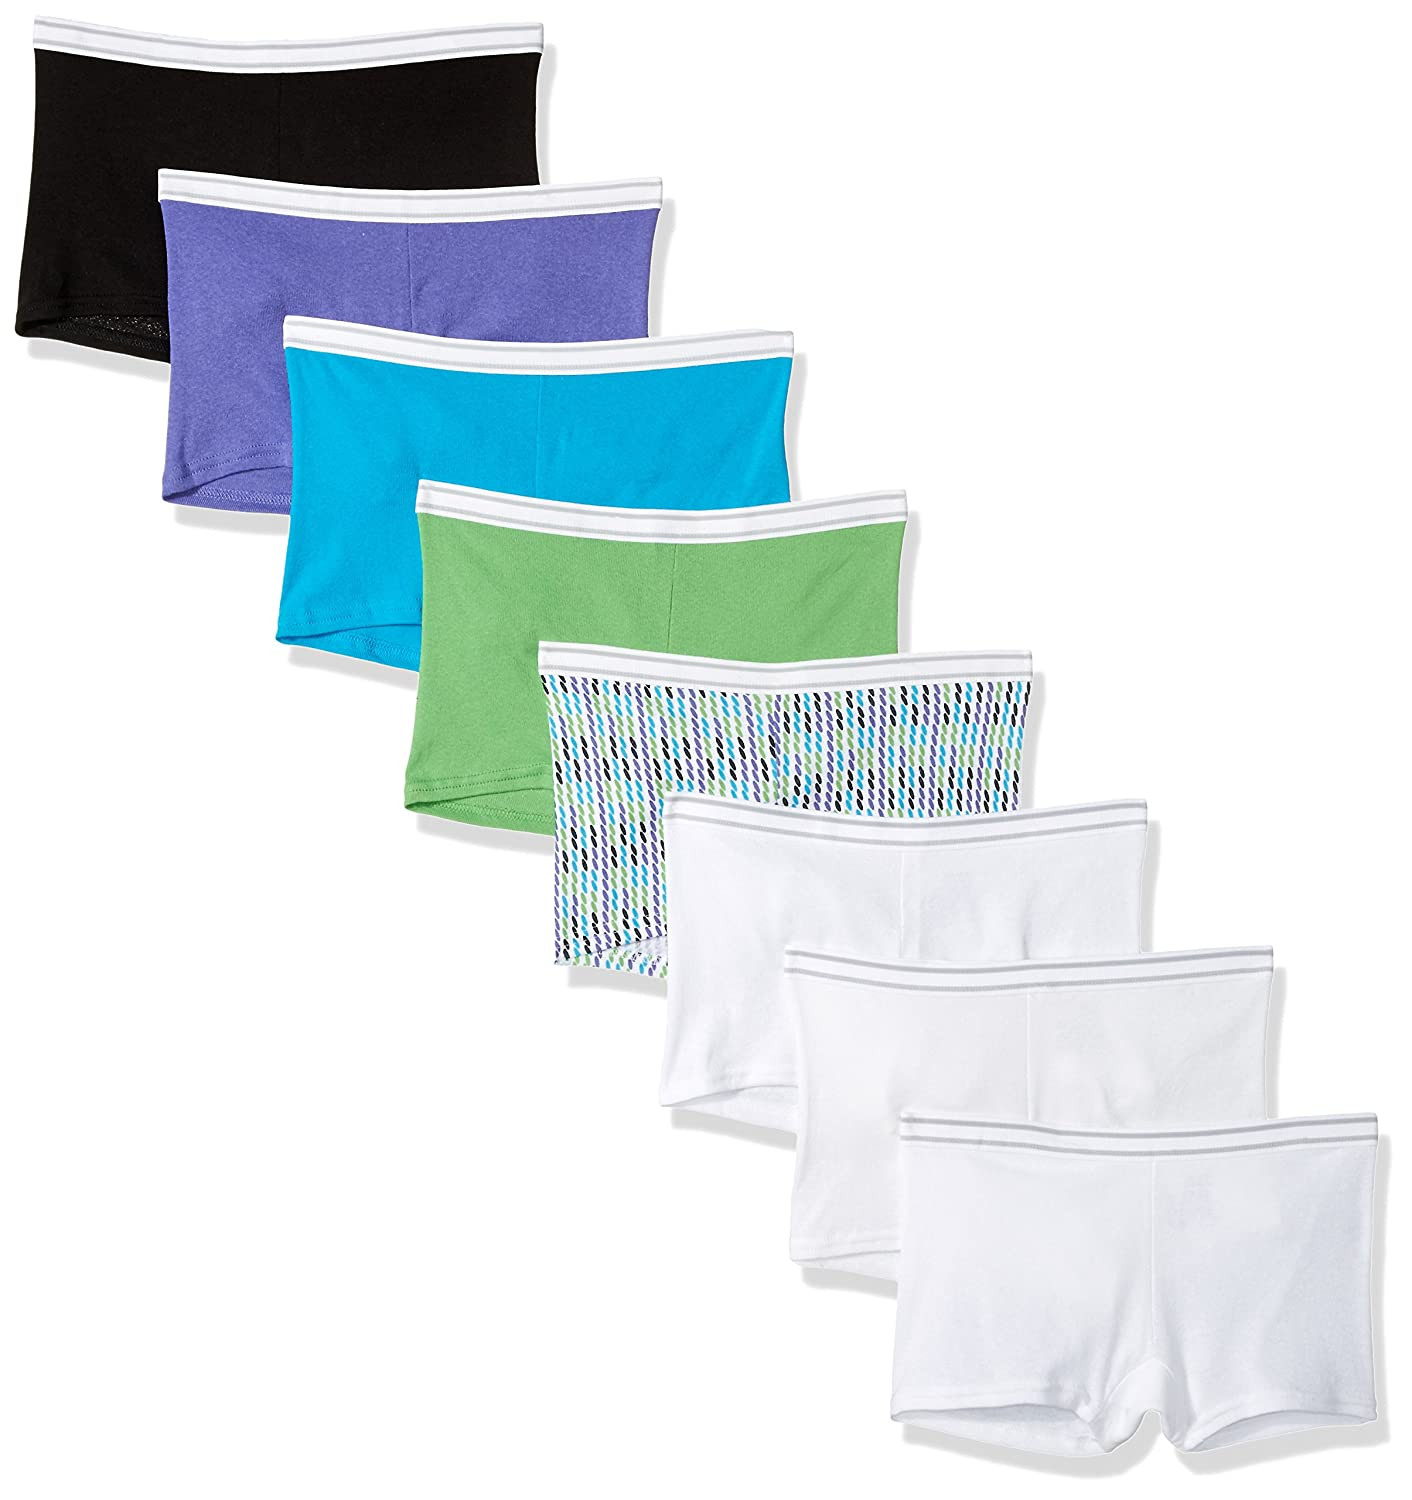 Hanes Women's Assorted Sporty Boyshort Panty (Pack of 6)